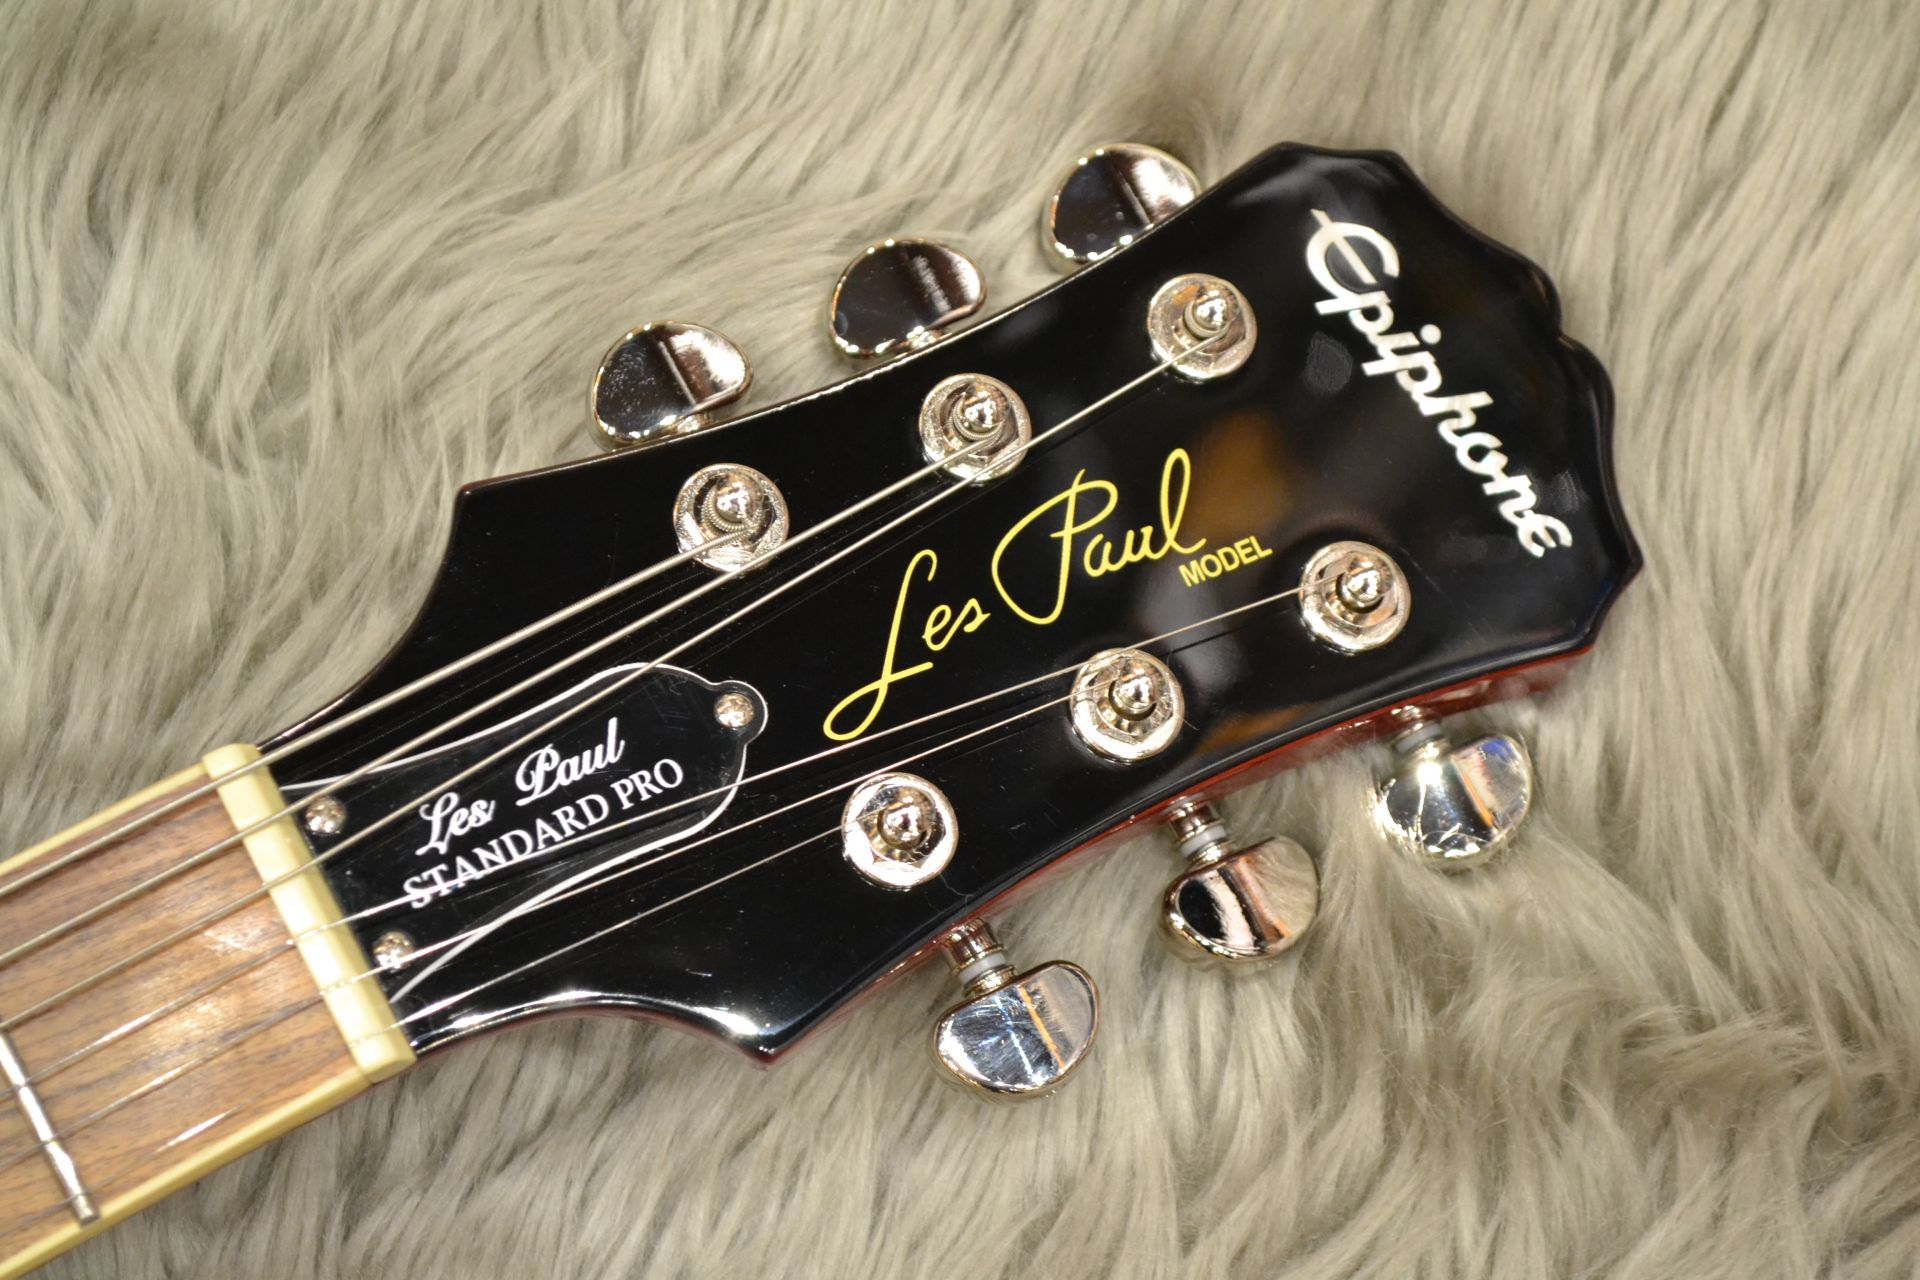 Les Paul STANDARD PLUS-TOP PRO (Probuckers&Coil-Tap)のヘッド画像